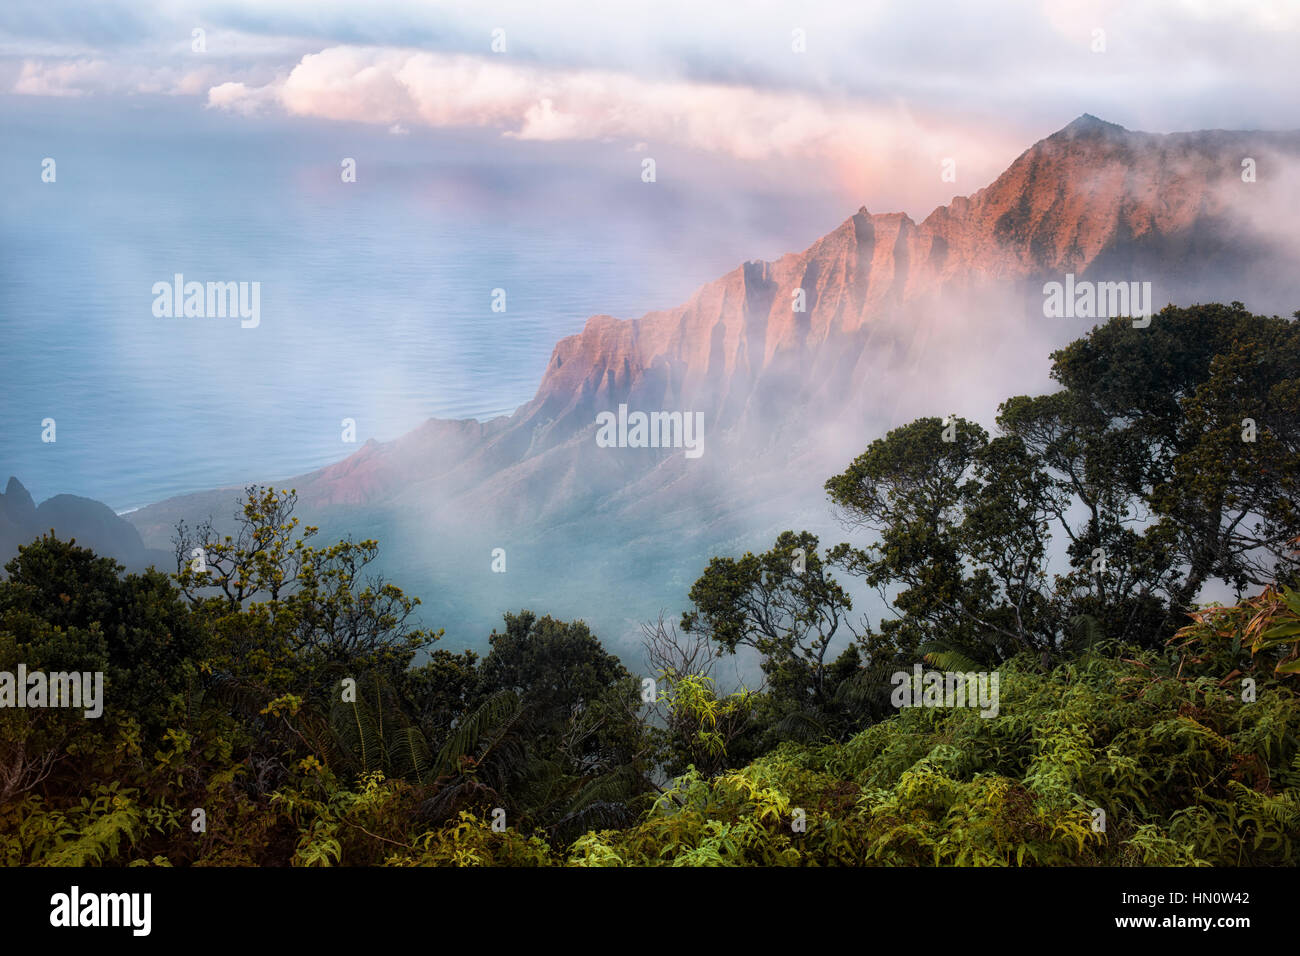 Last light and parting fog reveals the mystical Kalalau Valley along the Na Pali Coast on Hawaii's Island of Kauai. - Stock Image